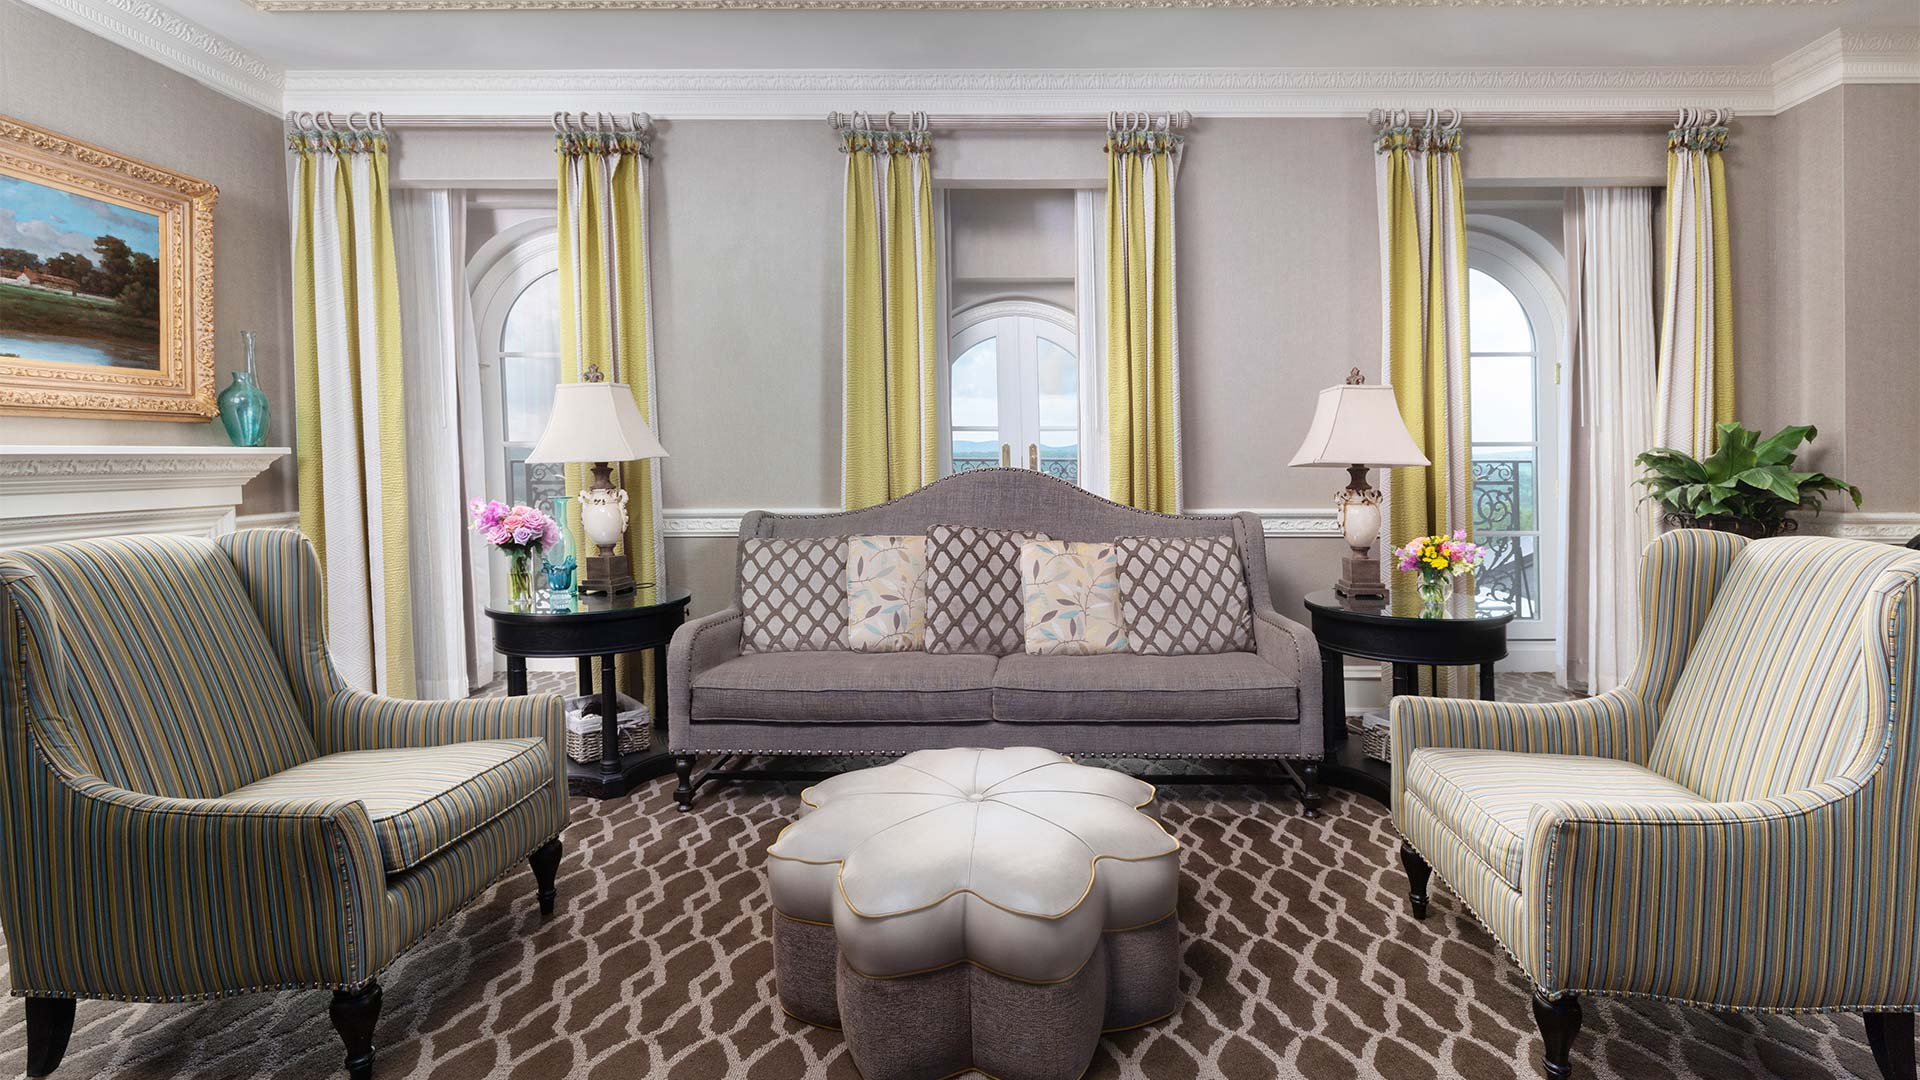 interior shot of the sitting room. There is a gray couch with two beige armchairs on either side. In the center is a floral shaped table.